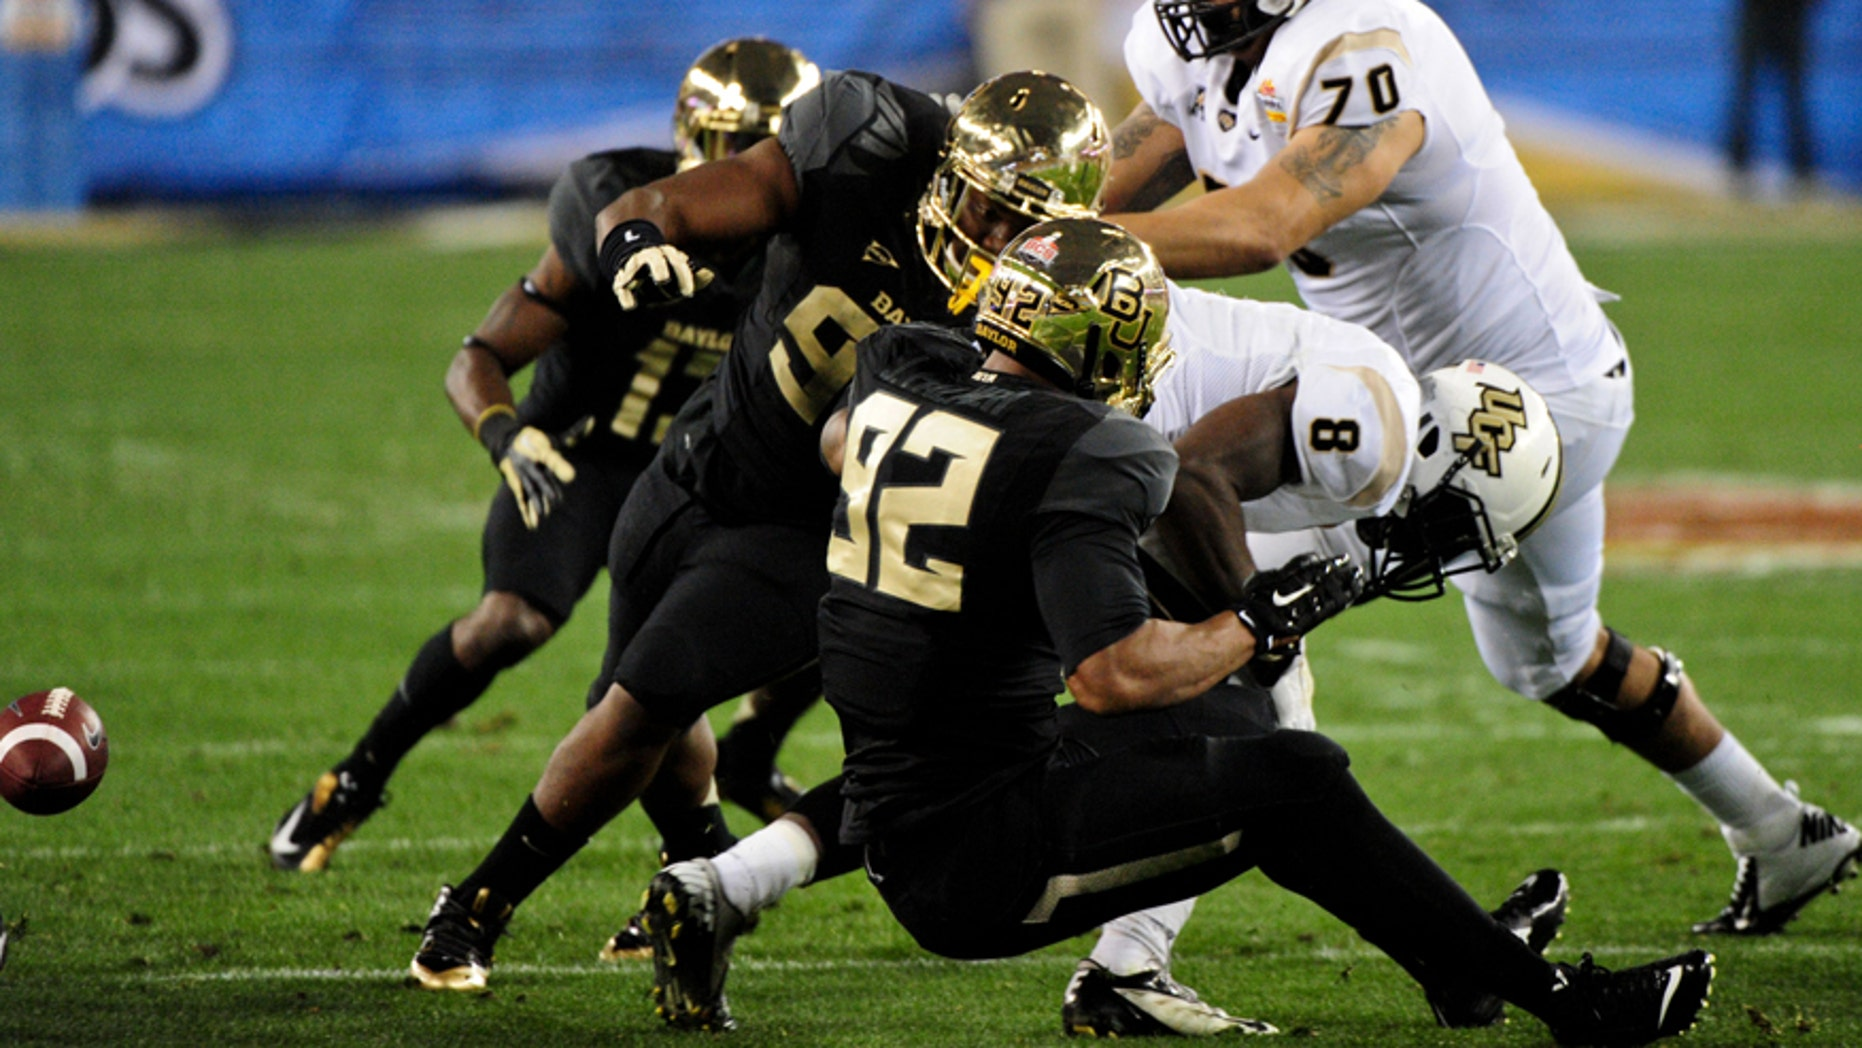 Jan 1, 2014; Glendale, AZ, USA; UCF Knights running back Storm Johnson (8) fumbles the ball while being tackled by Baylor Bears defensive lineman Byron Bonds (96) and defensive end Shawn Oakman (2) during the first half in the Fiesta Bowl at University of Phoenix Stadium. Mandatory Credit: Matt Kartozian-USA TODAY Sports - RTX16ZOV